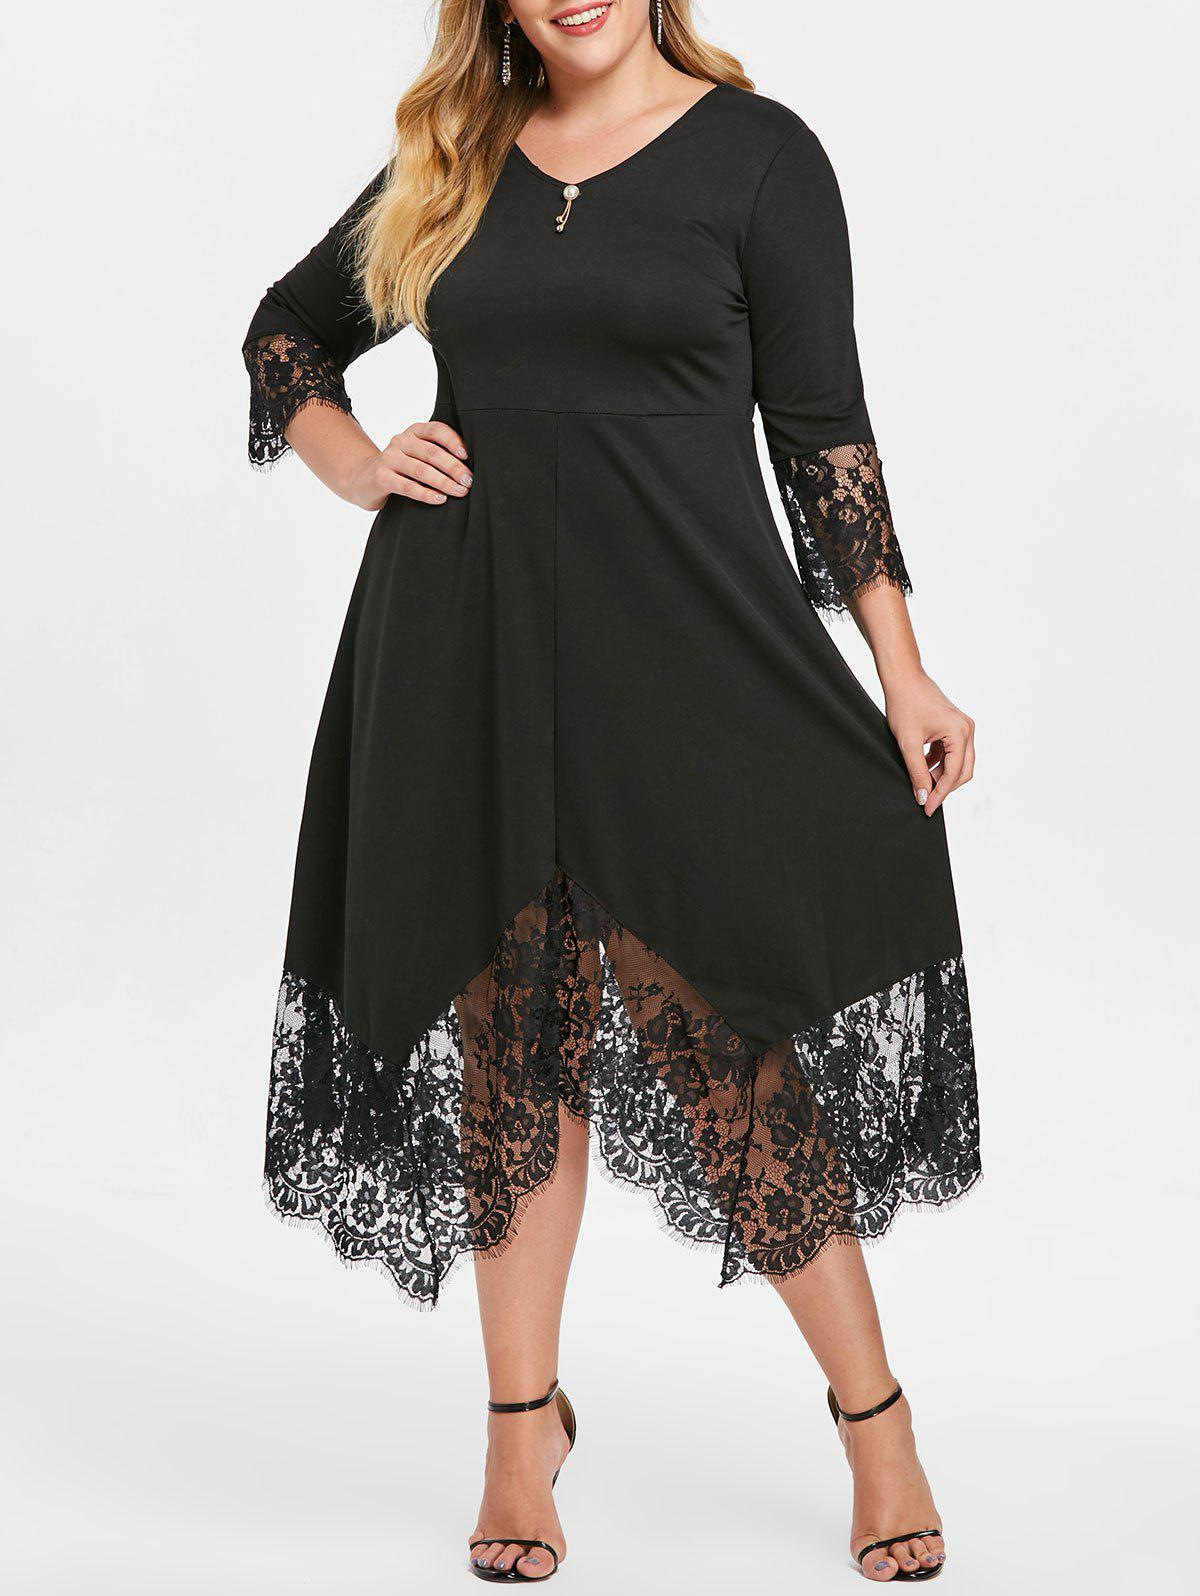 Trendy Plus Size Tie V Neck Dress with Lace Trim